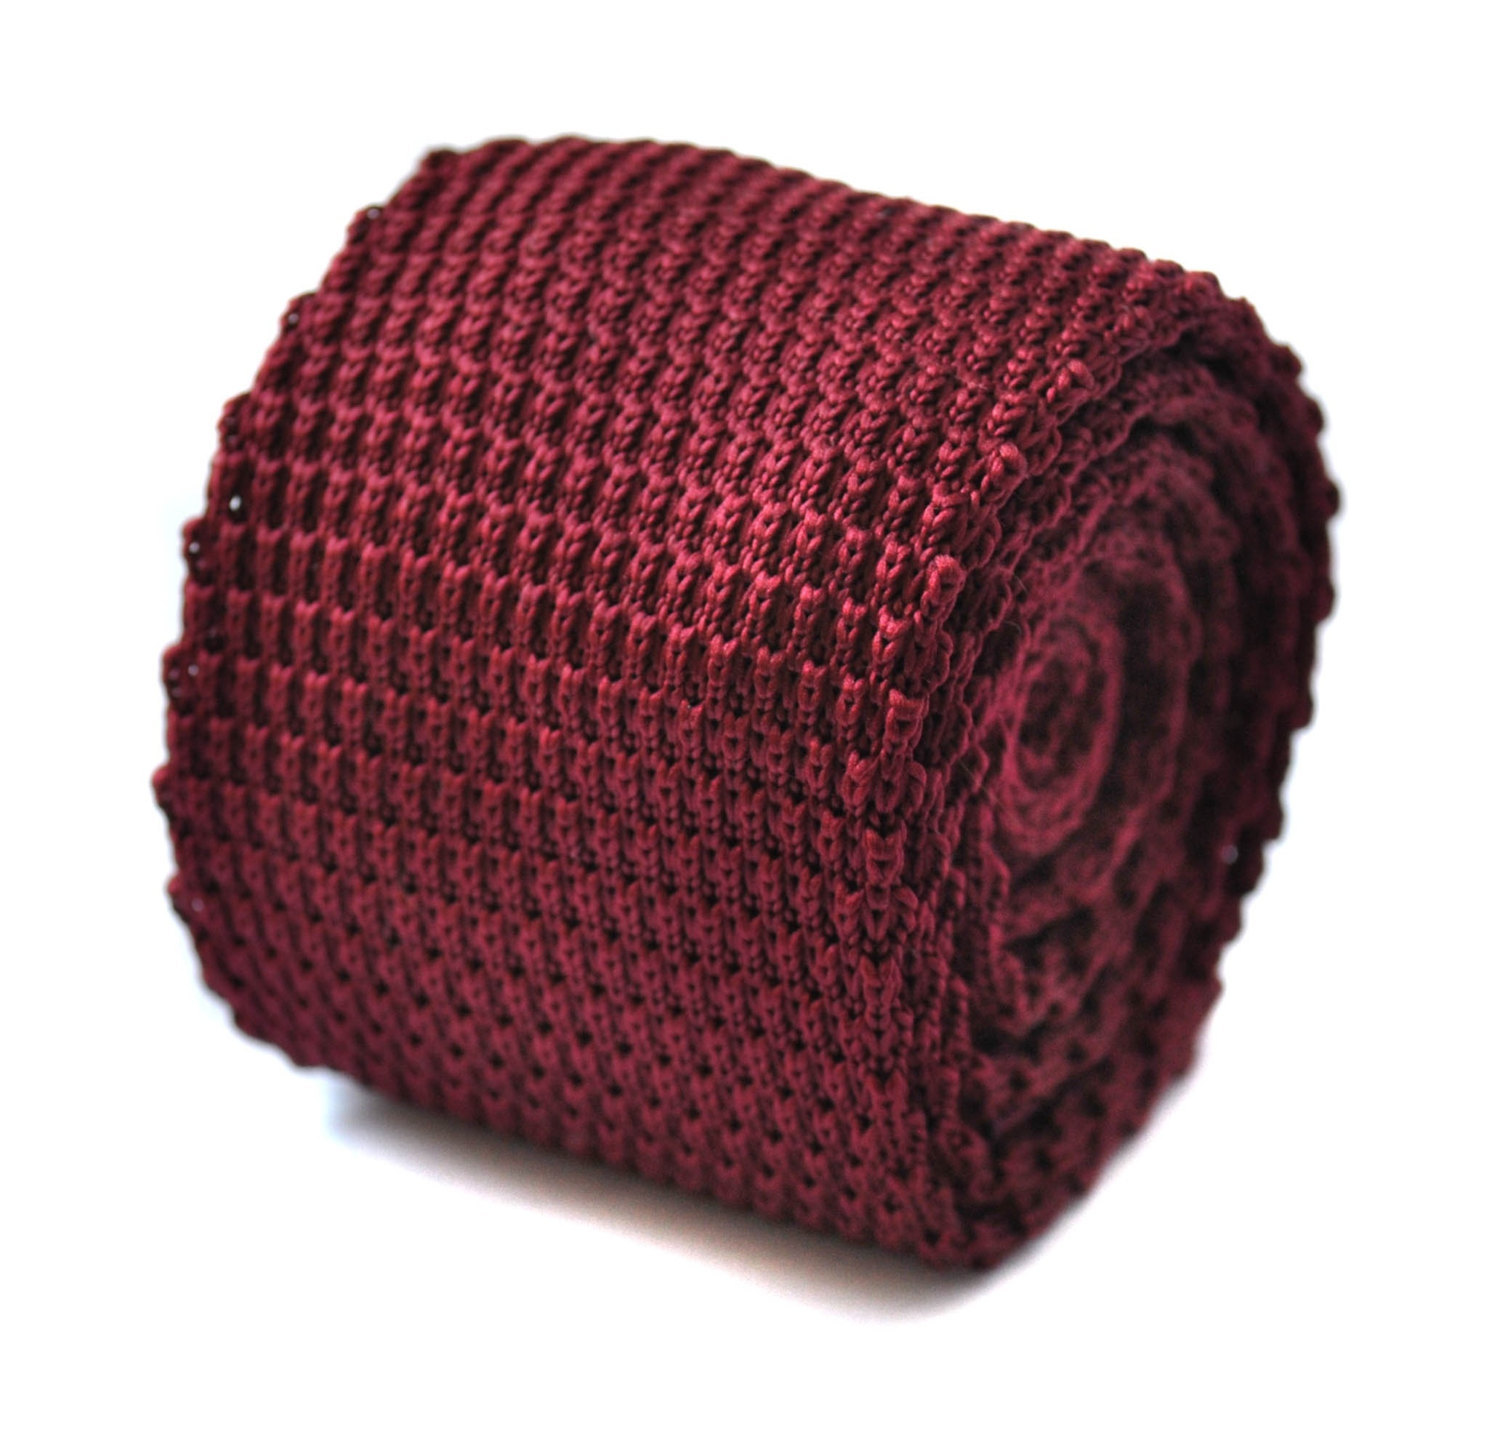 plain maroon knitted pointed end tie by Frederick Thomas FT272a in 8cm standard